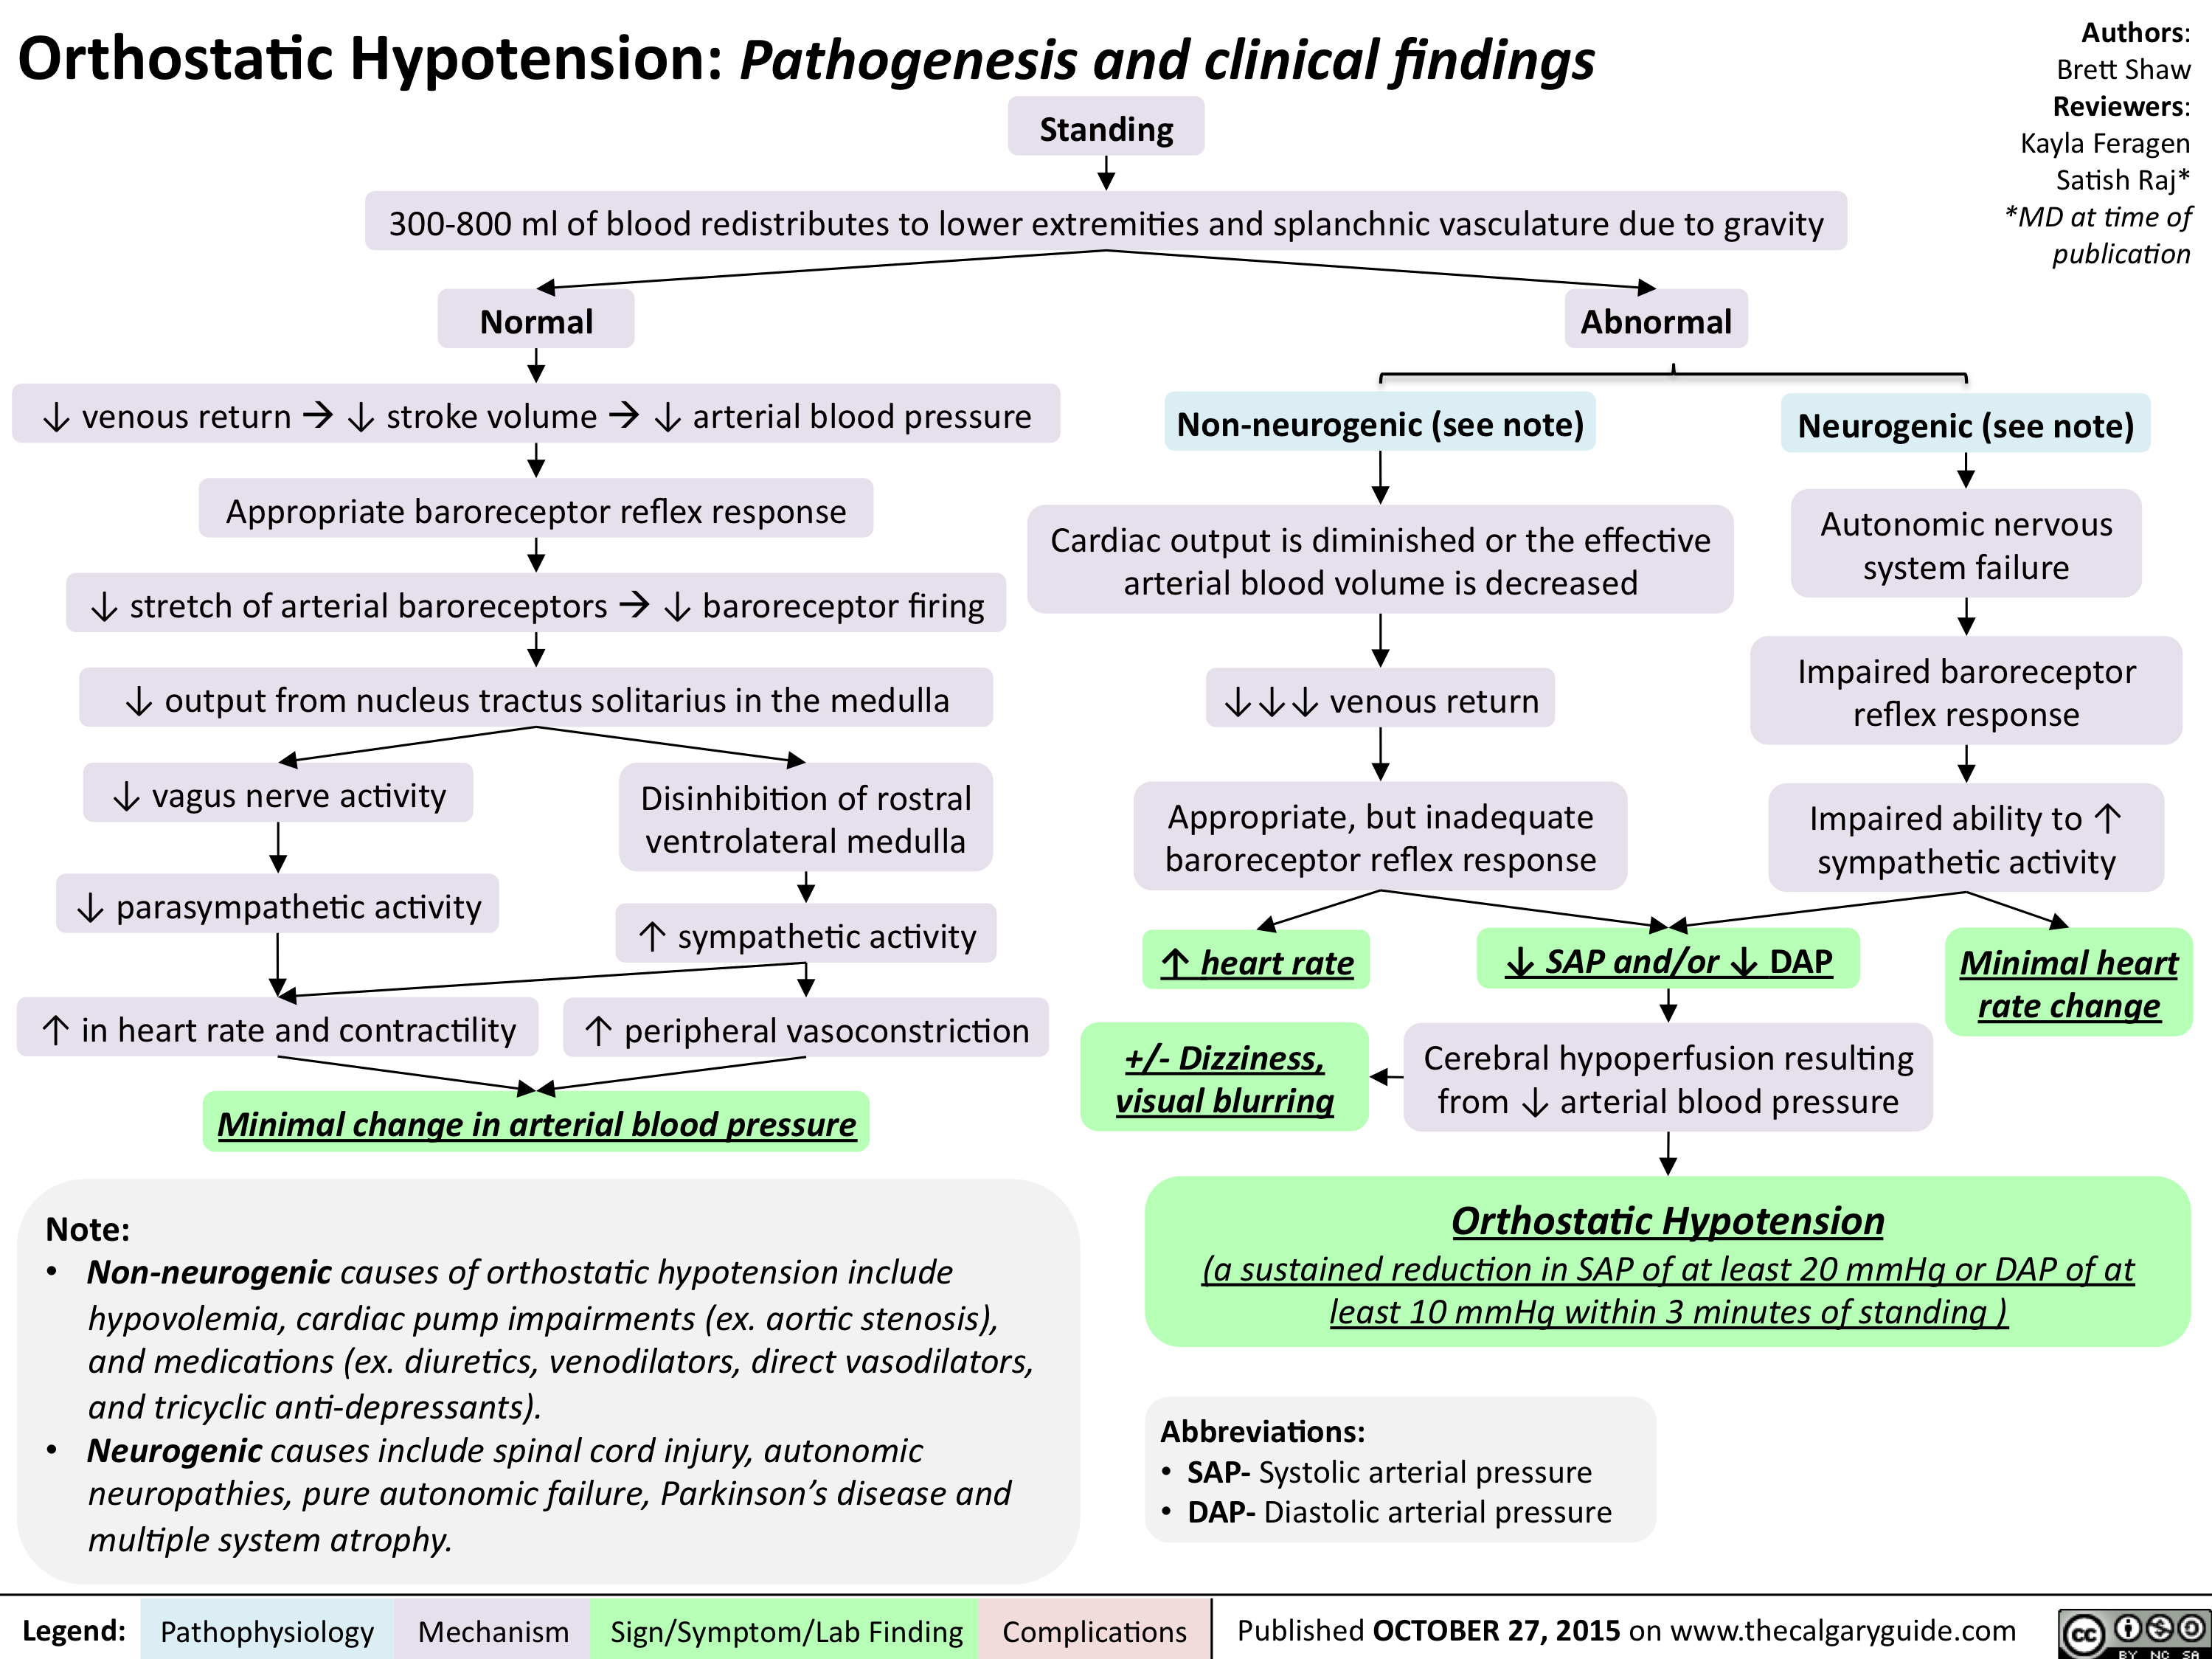 Orthostatic Hypotension-Pathogenesis and clinical findings